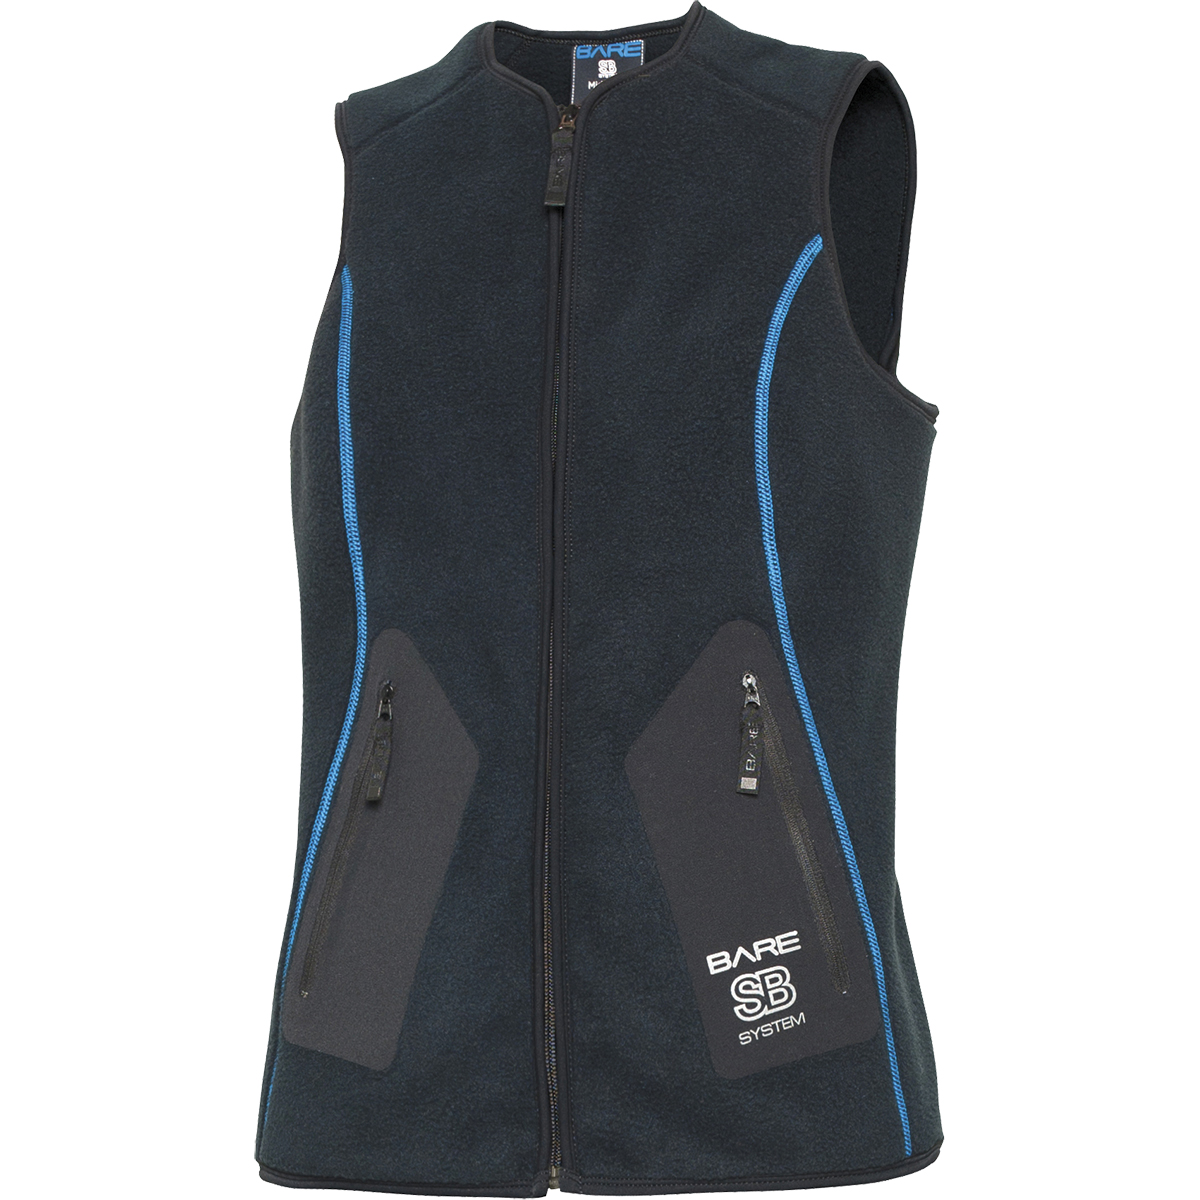 Sb System Mid Layer Vest - Women